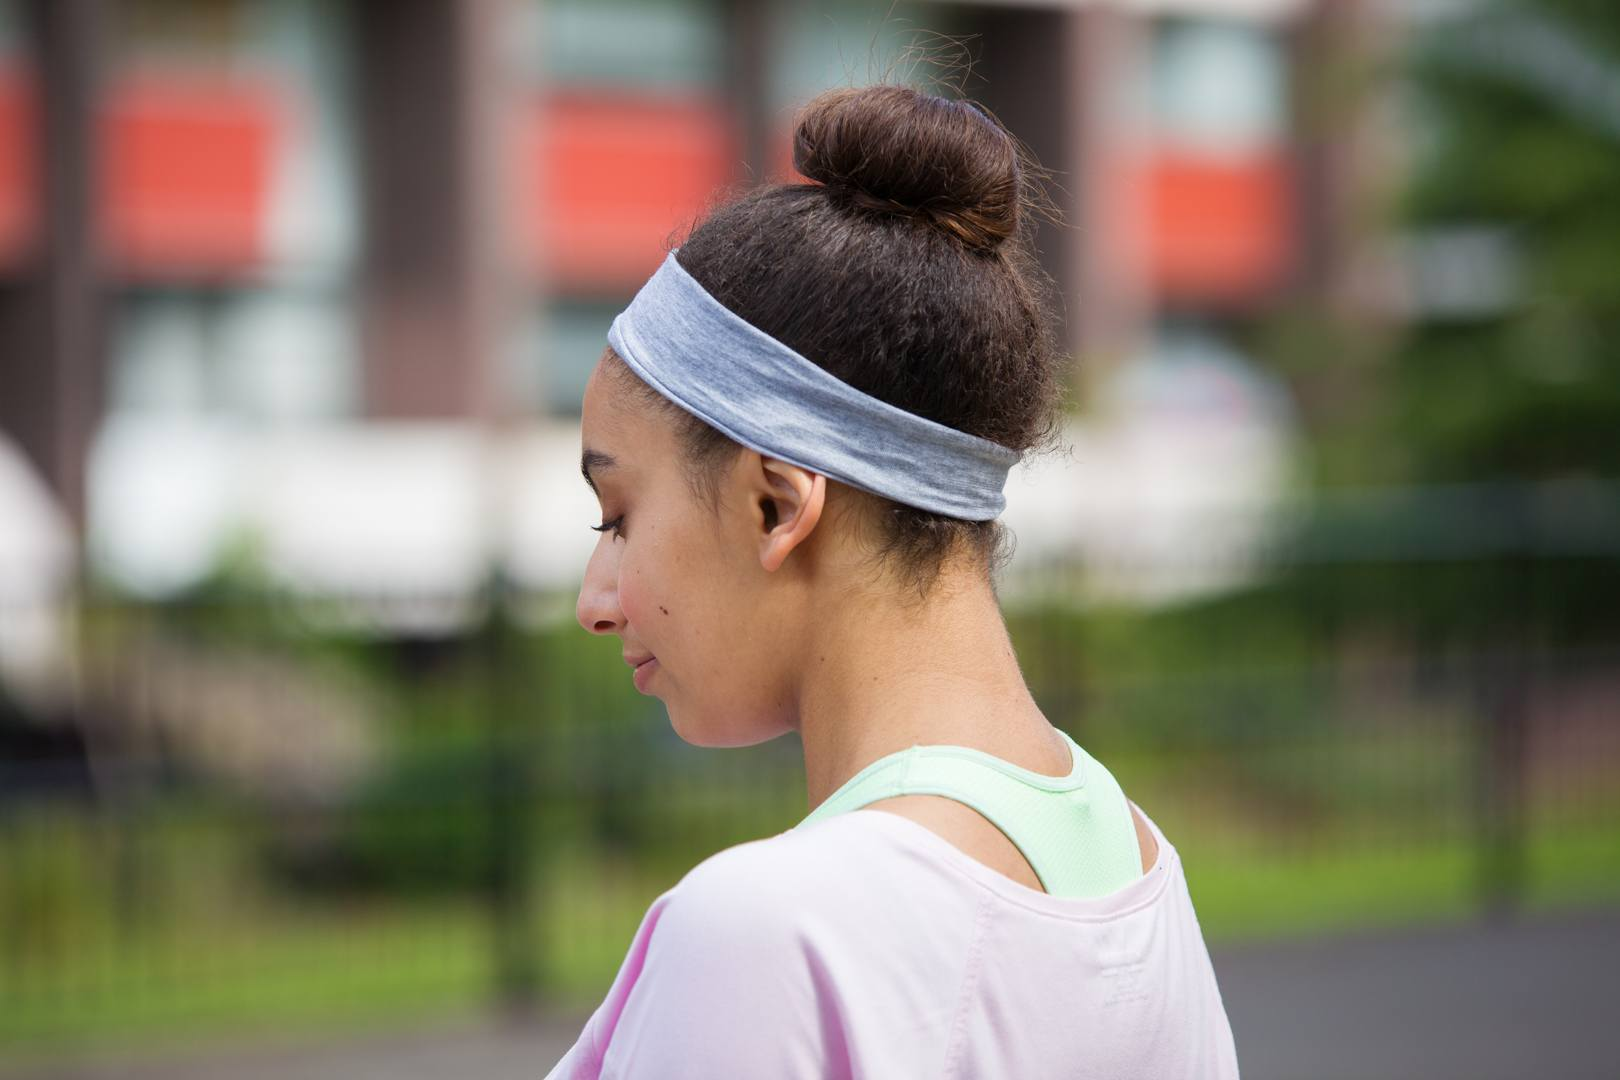 Gym hair styling tips: tight updo